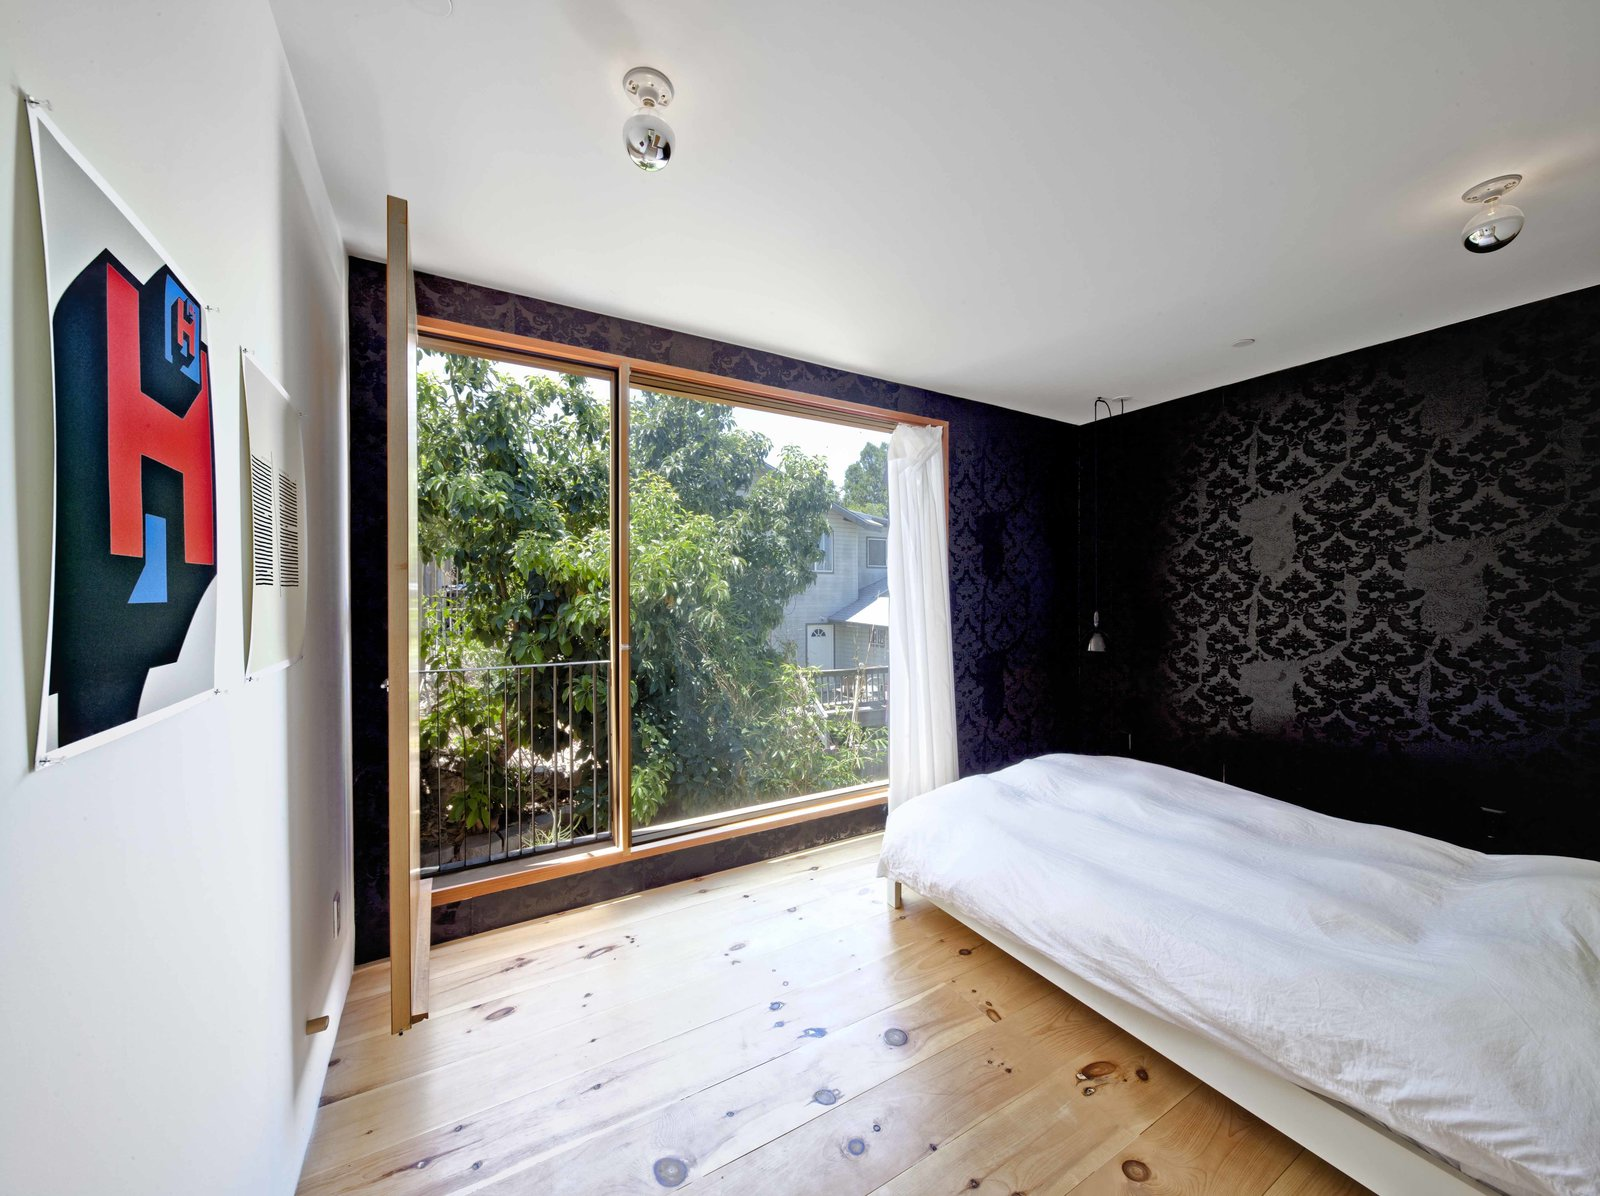 """The second story has two rooms and a bathroom. Storey uses the room overlooking the street as his architecture studio, and the quiet back room as a bedroom. Its small balcony is the height of the avocado tree canopy, giving him the sense that he sleeps in a tree.   The wallpaper is the architect's own design. """"The wallpaper is called Torn and Confused,"""" he says. """"It was originally designed to look like it was torn from the wall, exposing another layer of wallpaper underneath. I love the irony of using it on a new house."""" Home and Studio Maximizes Very Narrow Site in Echo Park - Photo 6 of 9"""